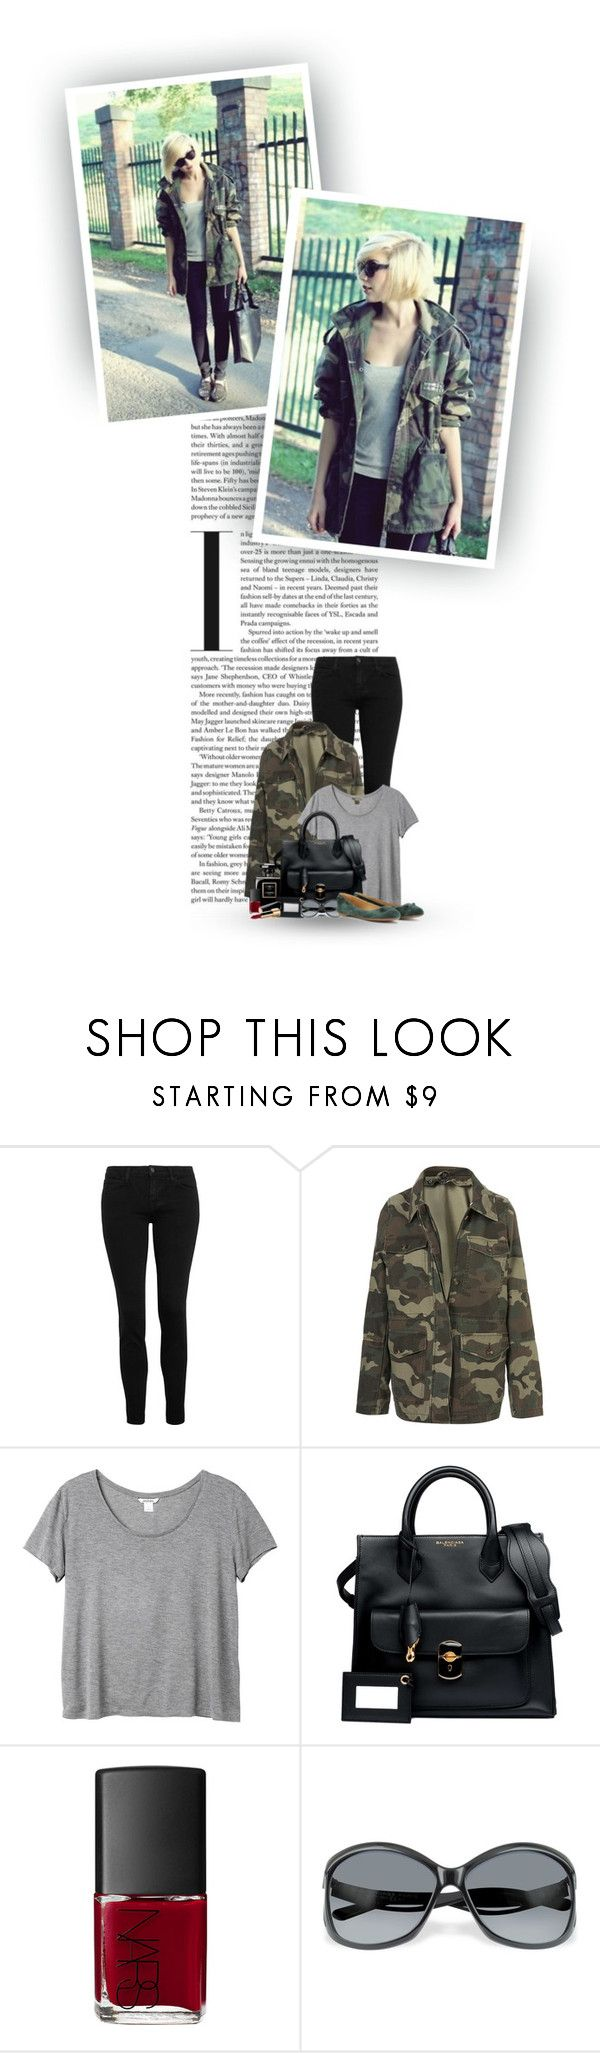 """""""Never Let Your Fear Decide Your Fate..."""" by hollowpoint-smile ❤ liked on Polyvore featuring Christopher Kane, Topshop, Monki, Chanel, Balenciaga, NARS Cosmetics, skinny jeans, camo, sunglasses and chanel"""